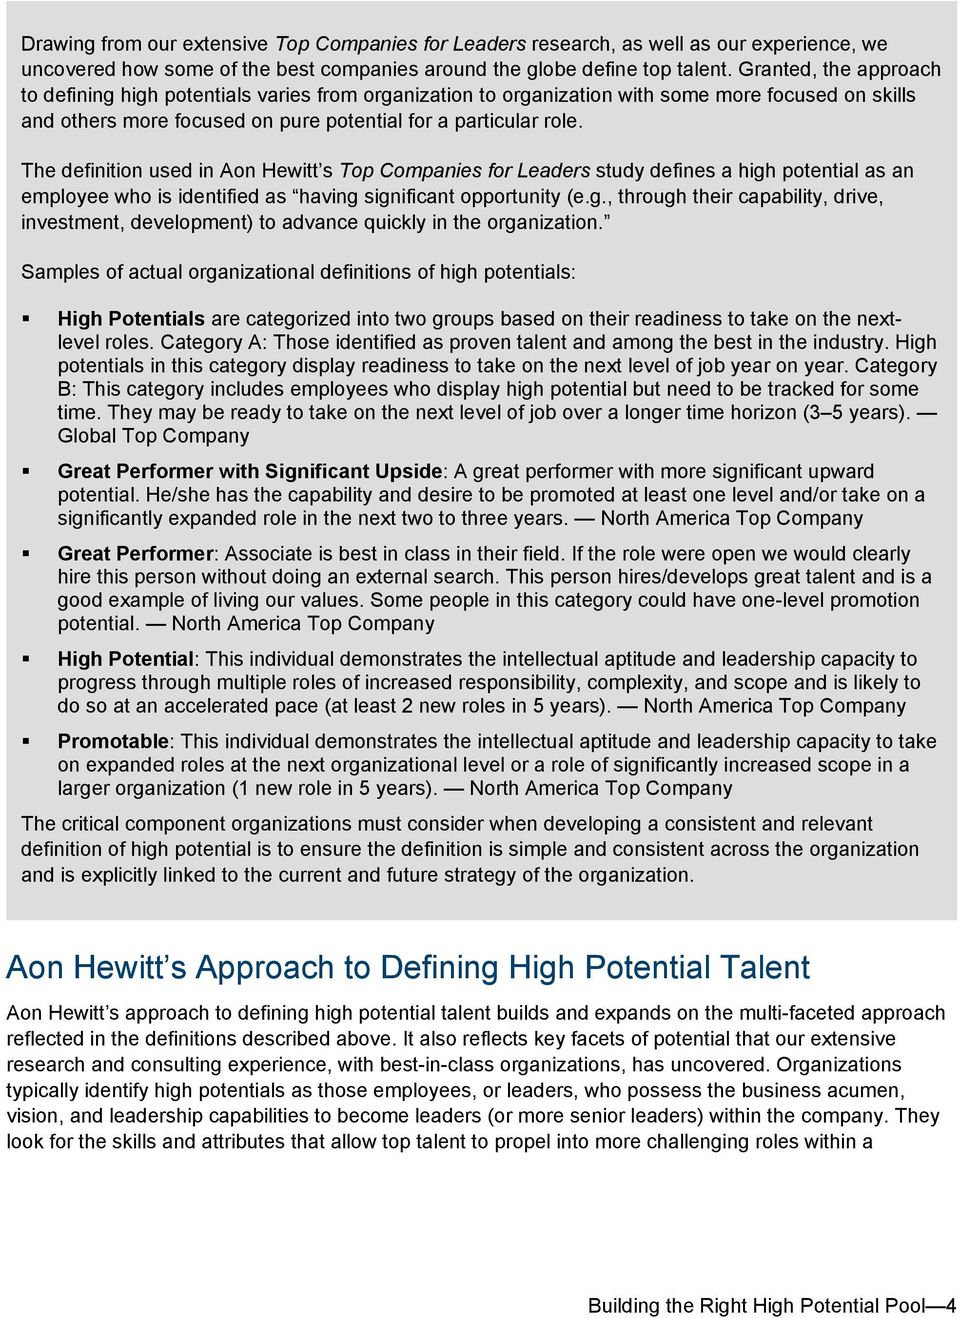 The definition used in Aon Hewitt s Top Companies for Leaders study defines a high potential as an employee who is identified as having significant opportunity (e.g., through their capability, drive, investment, development) to advance quickly in the organization.